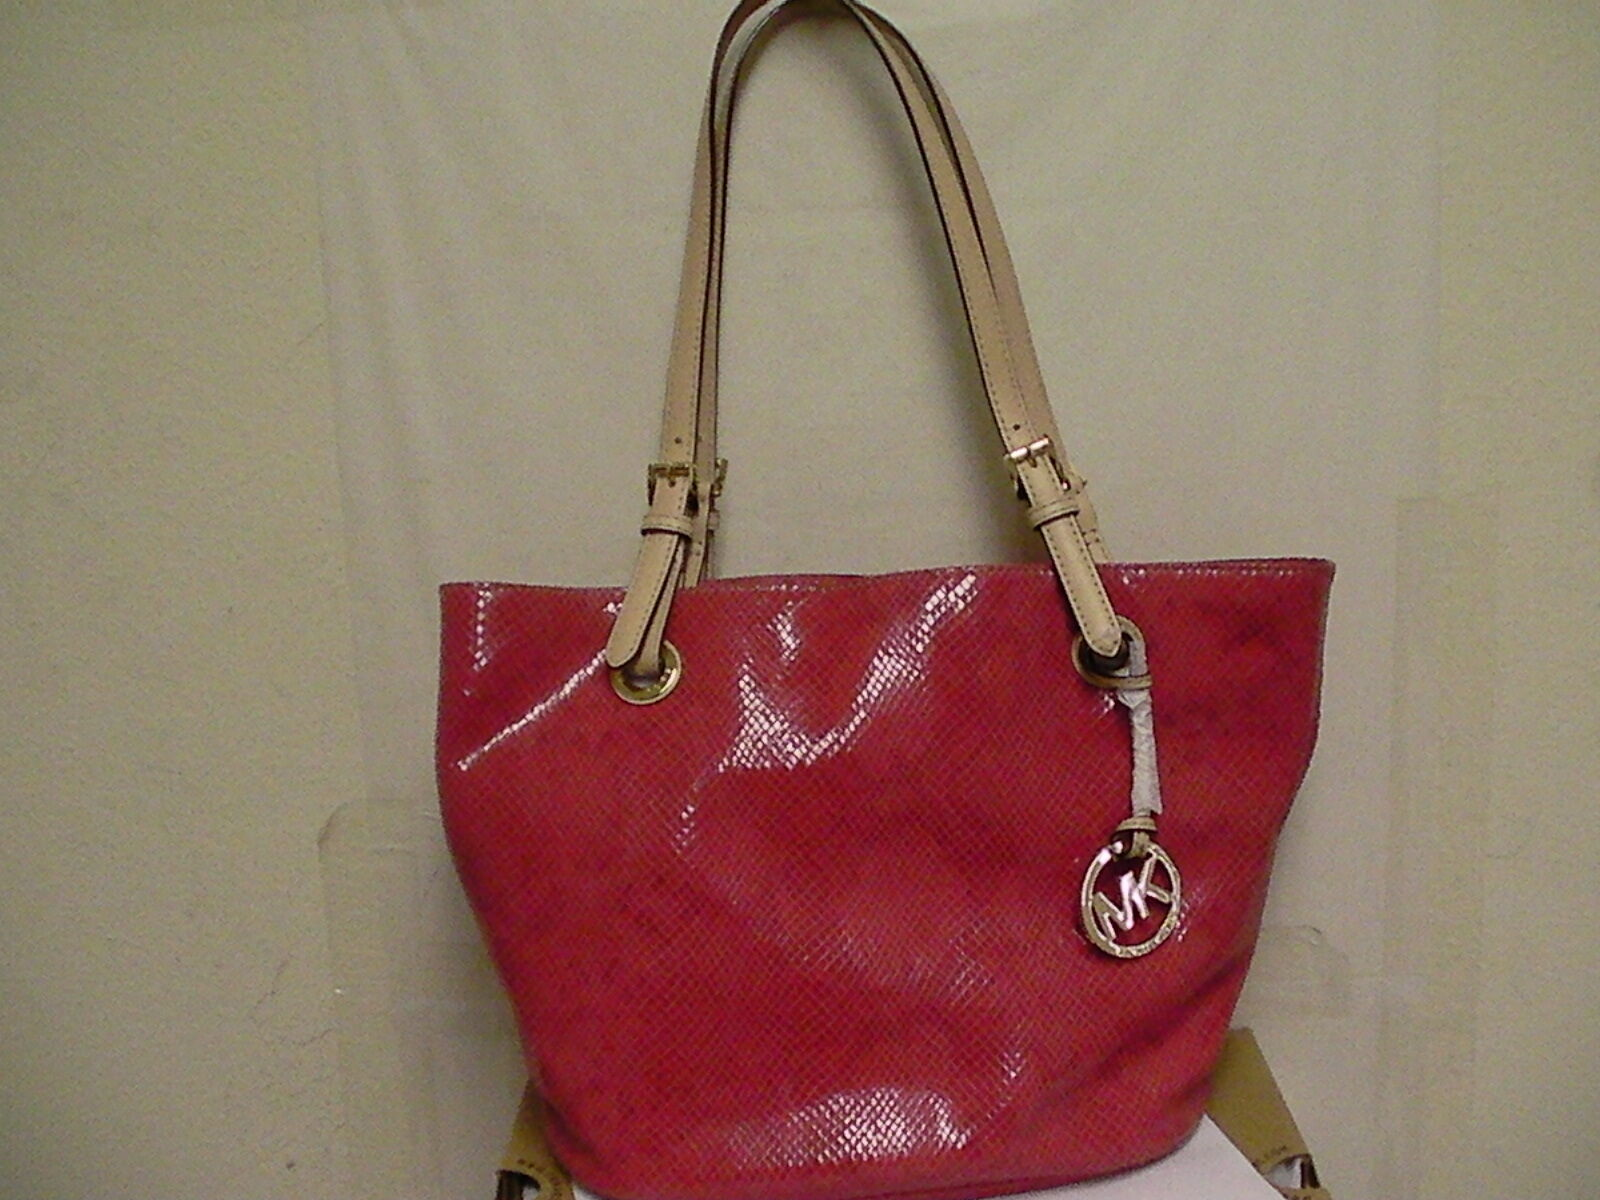 Primary image for Michael kors jet set mid tote handbag assorted leather